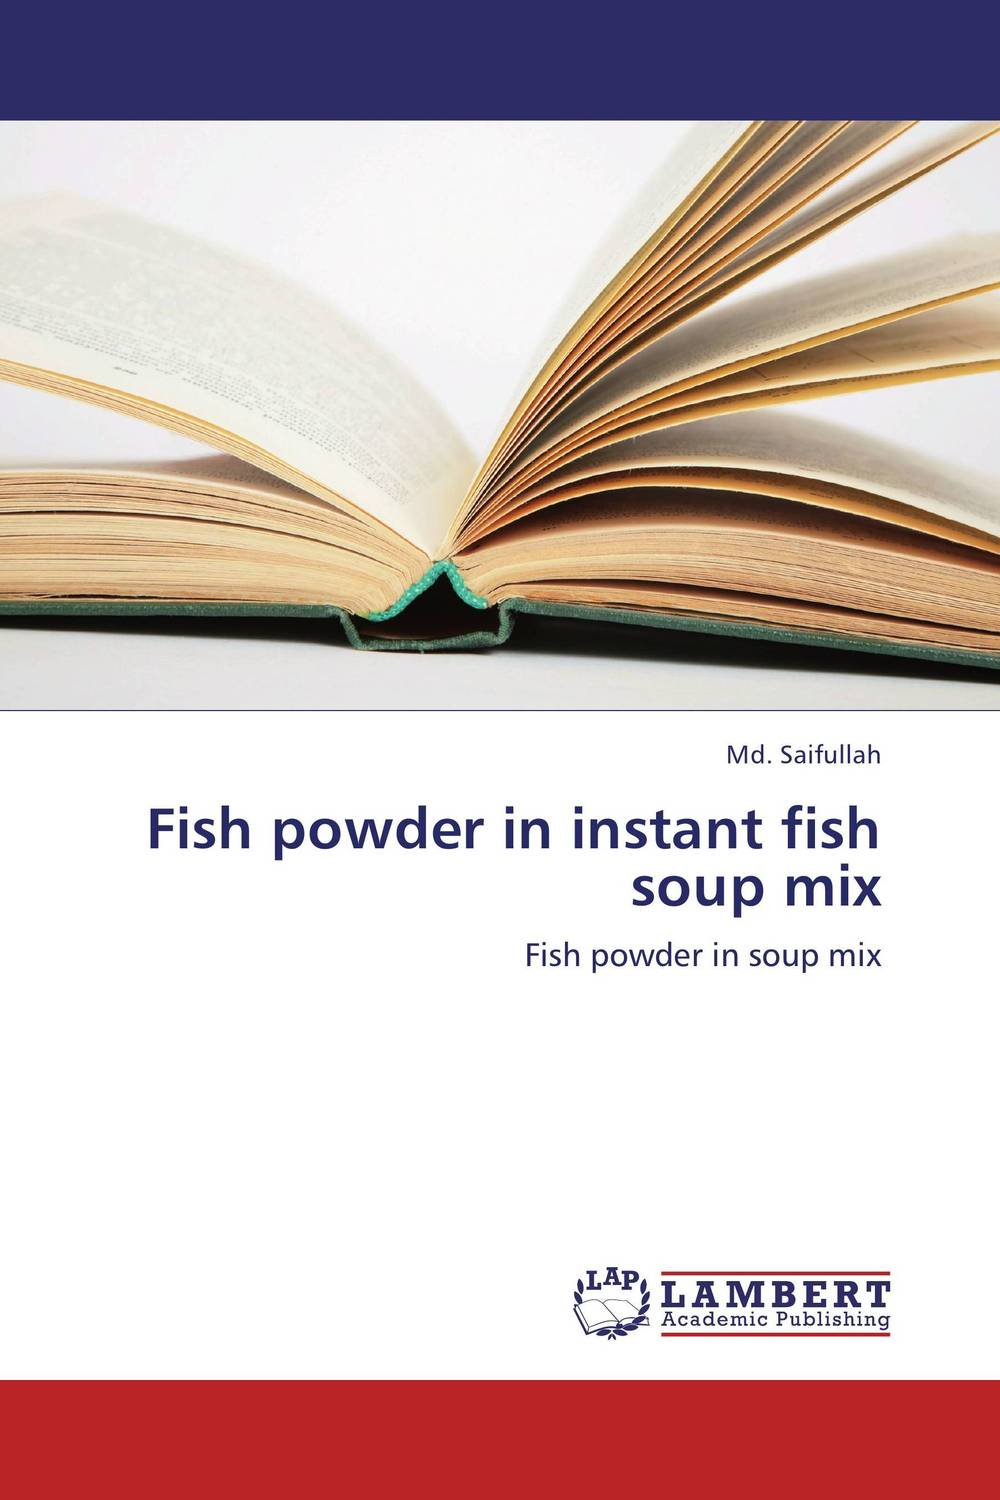 Fish powder in instant fish soup mix 1000g 98% fish collagen powder high purity for functional food